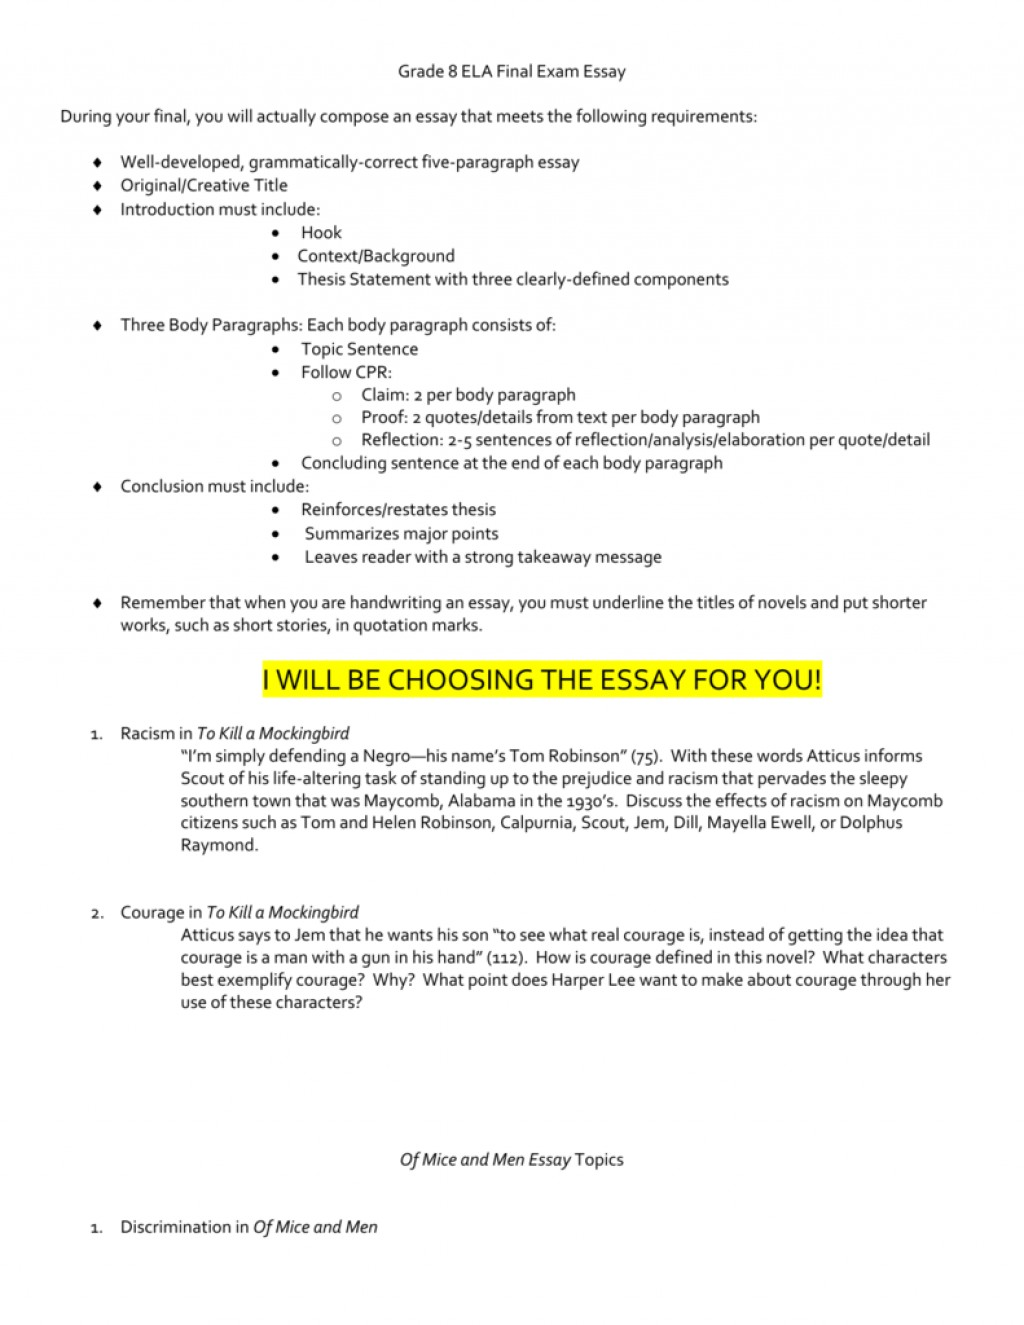 002 Essay Example To Kill Mockingbird Topics 008008940 1 Stunning A Writing Prompts By Chapter Research Paper Pdf Large